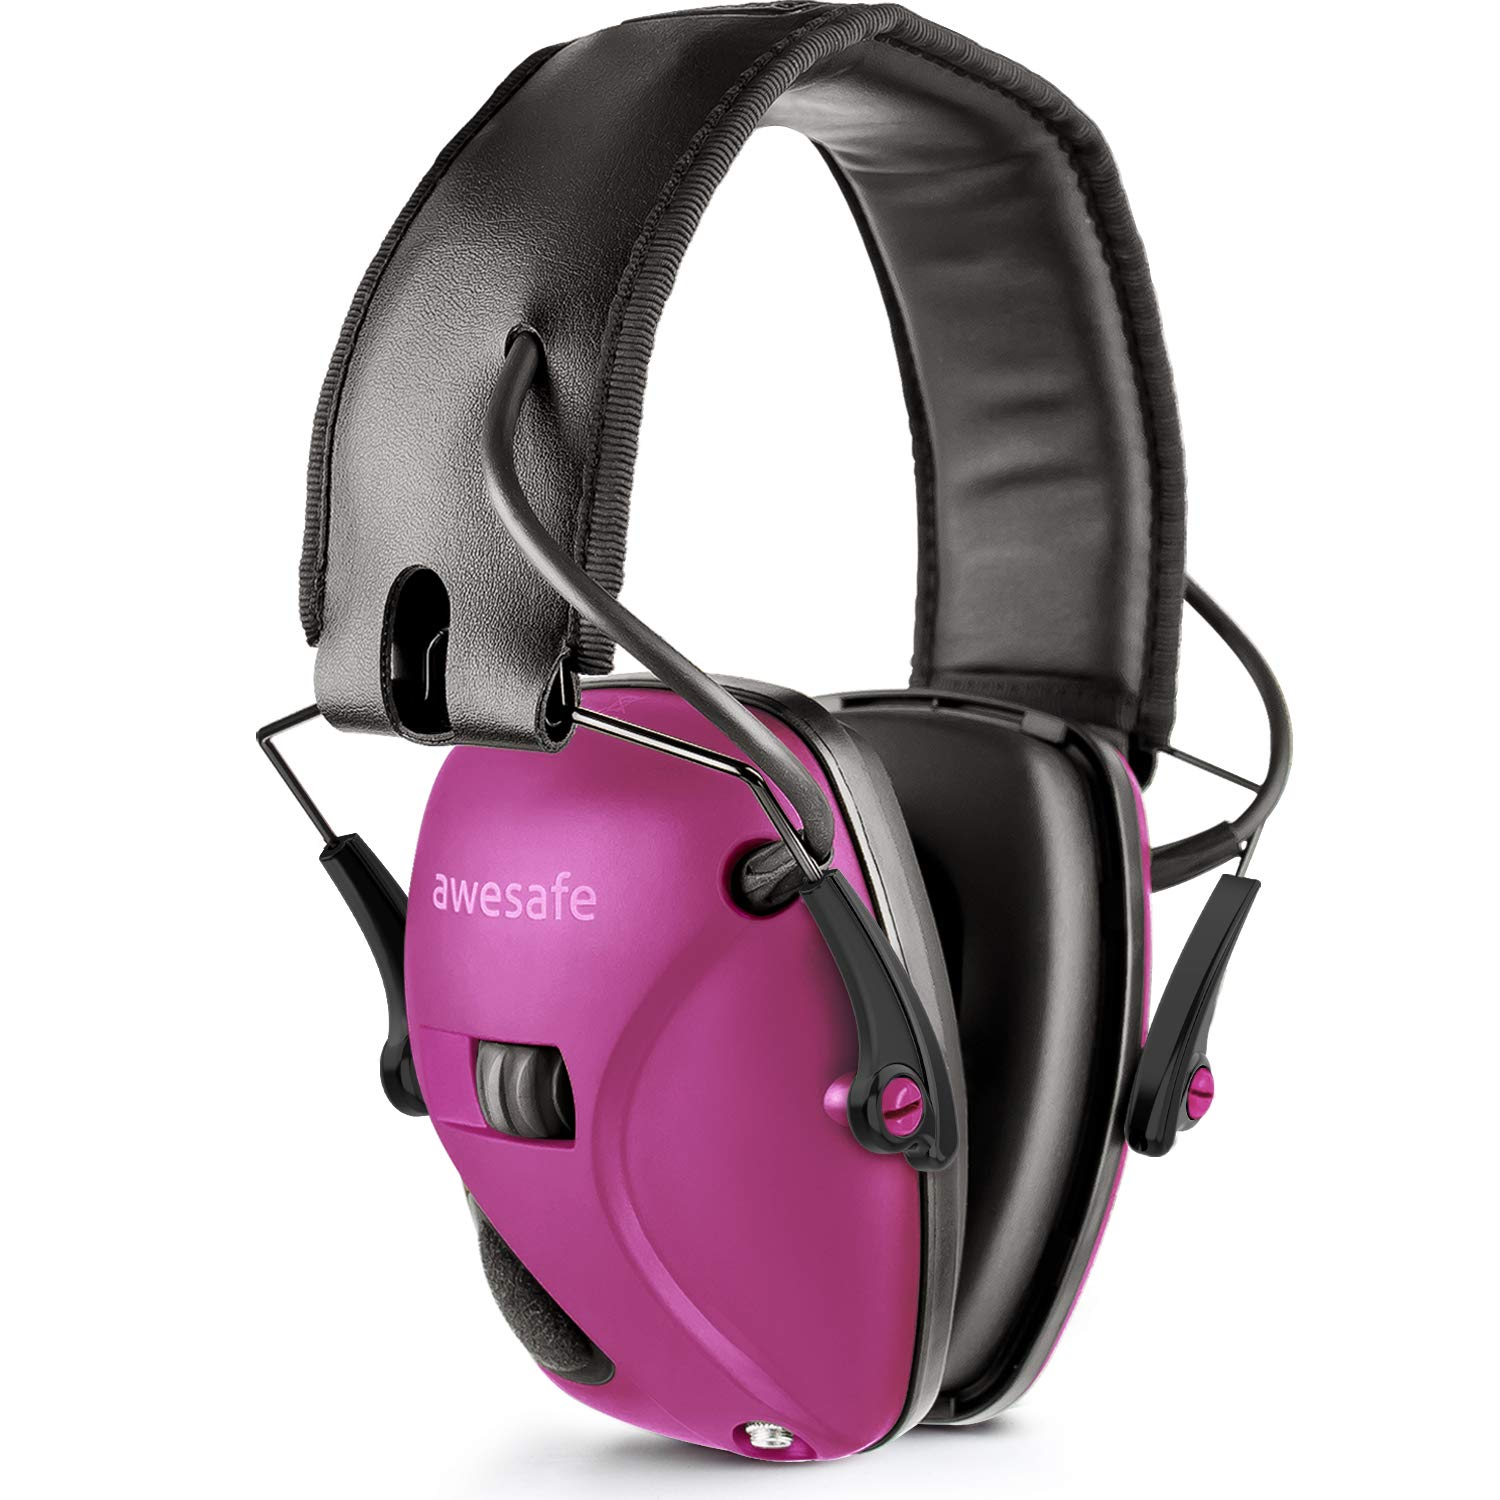 Awesafe Electronic Shooting Earmuff, GF01 Noise Reduction Sound Amplification Electronic Safety Ear Muffs, Ear Protection, NRR 22 dB, Ideal for Shooting and Hunting, Rose Red